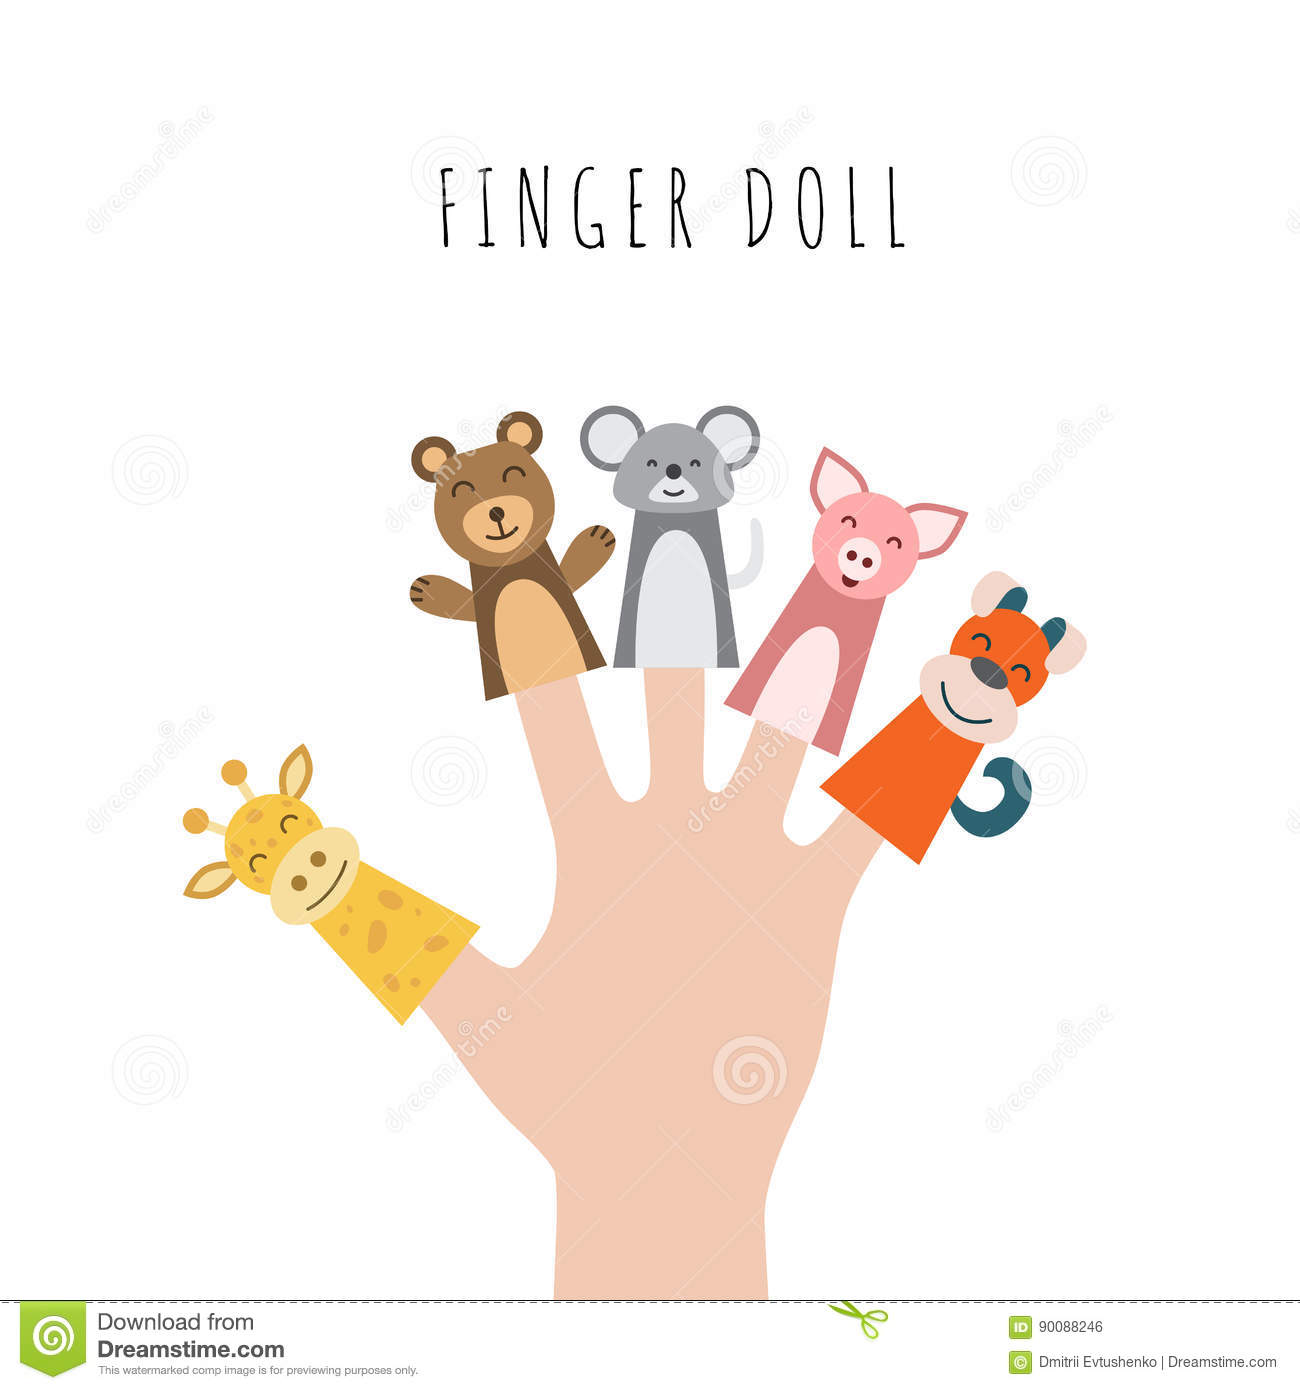 Figures of animals heroes of the puppet theatre which put in the fingers of the hand vector illustration of characters to play with the children in